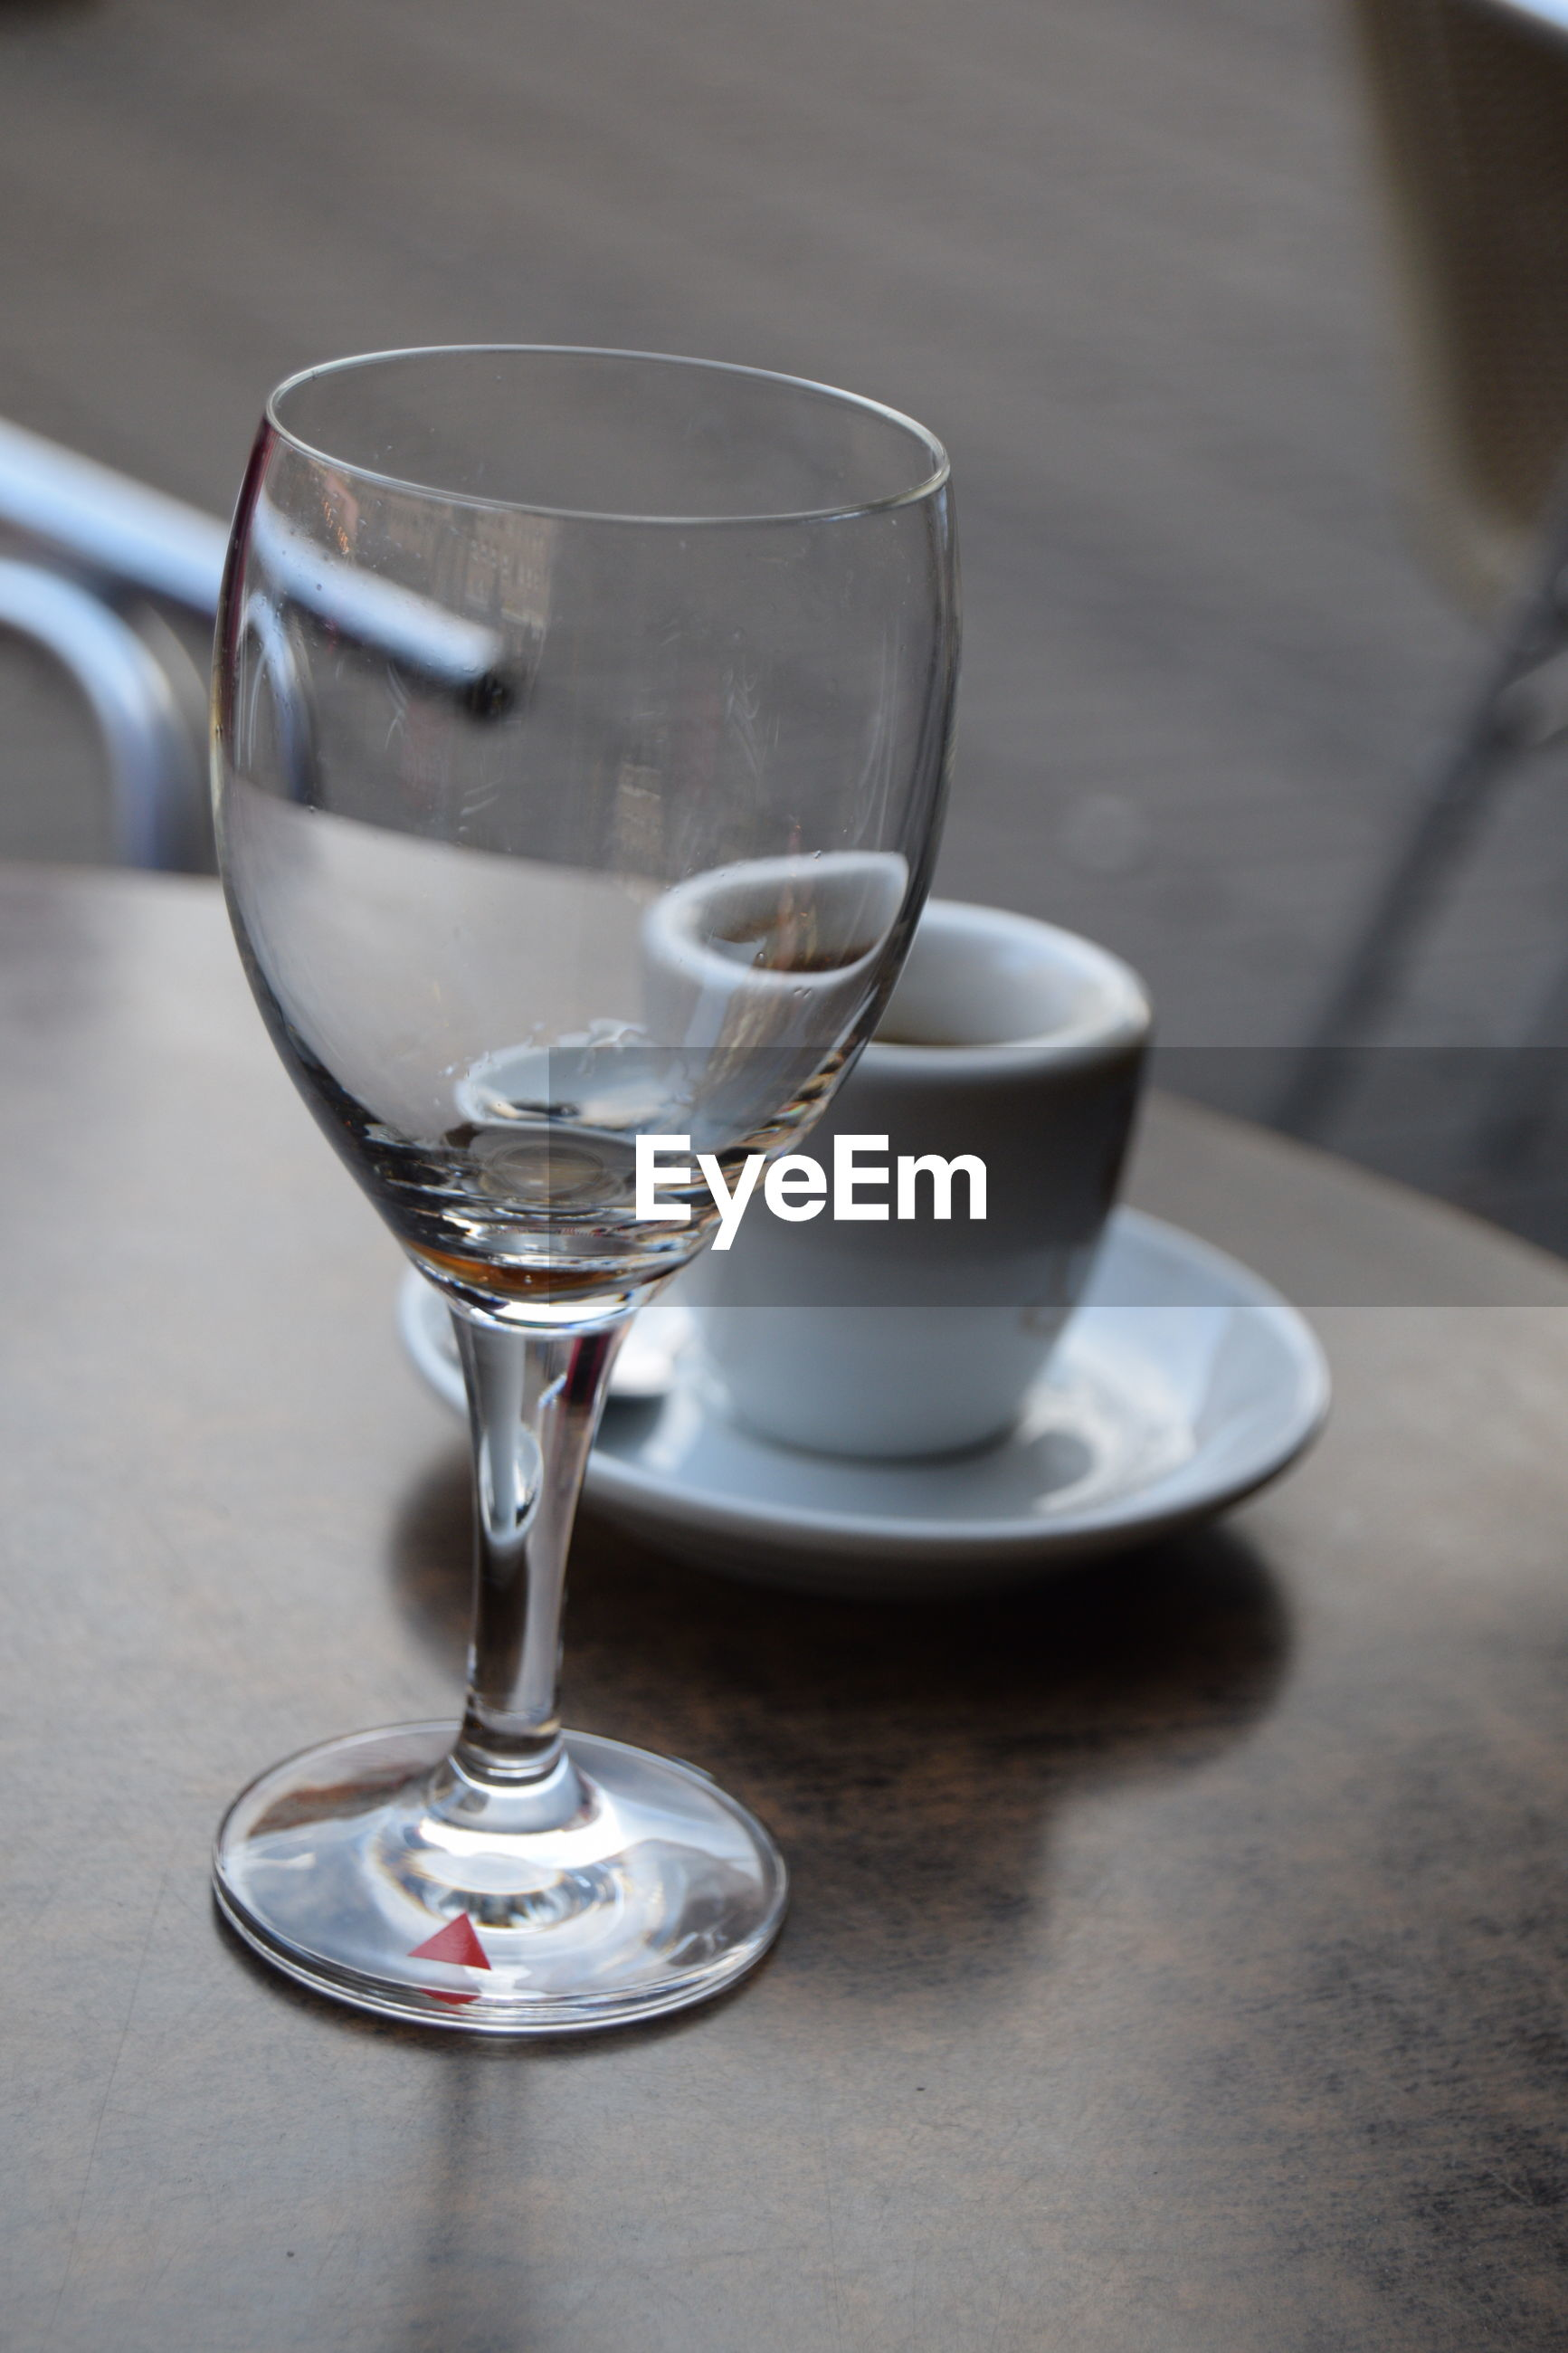 Close-up of coffee cup and wineglass on table